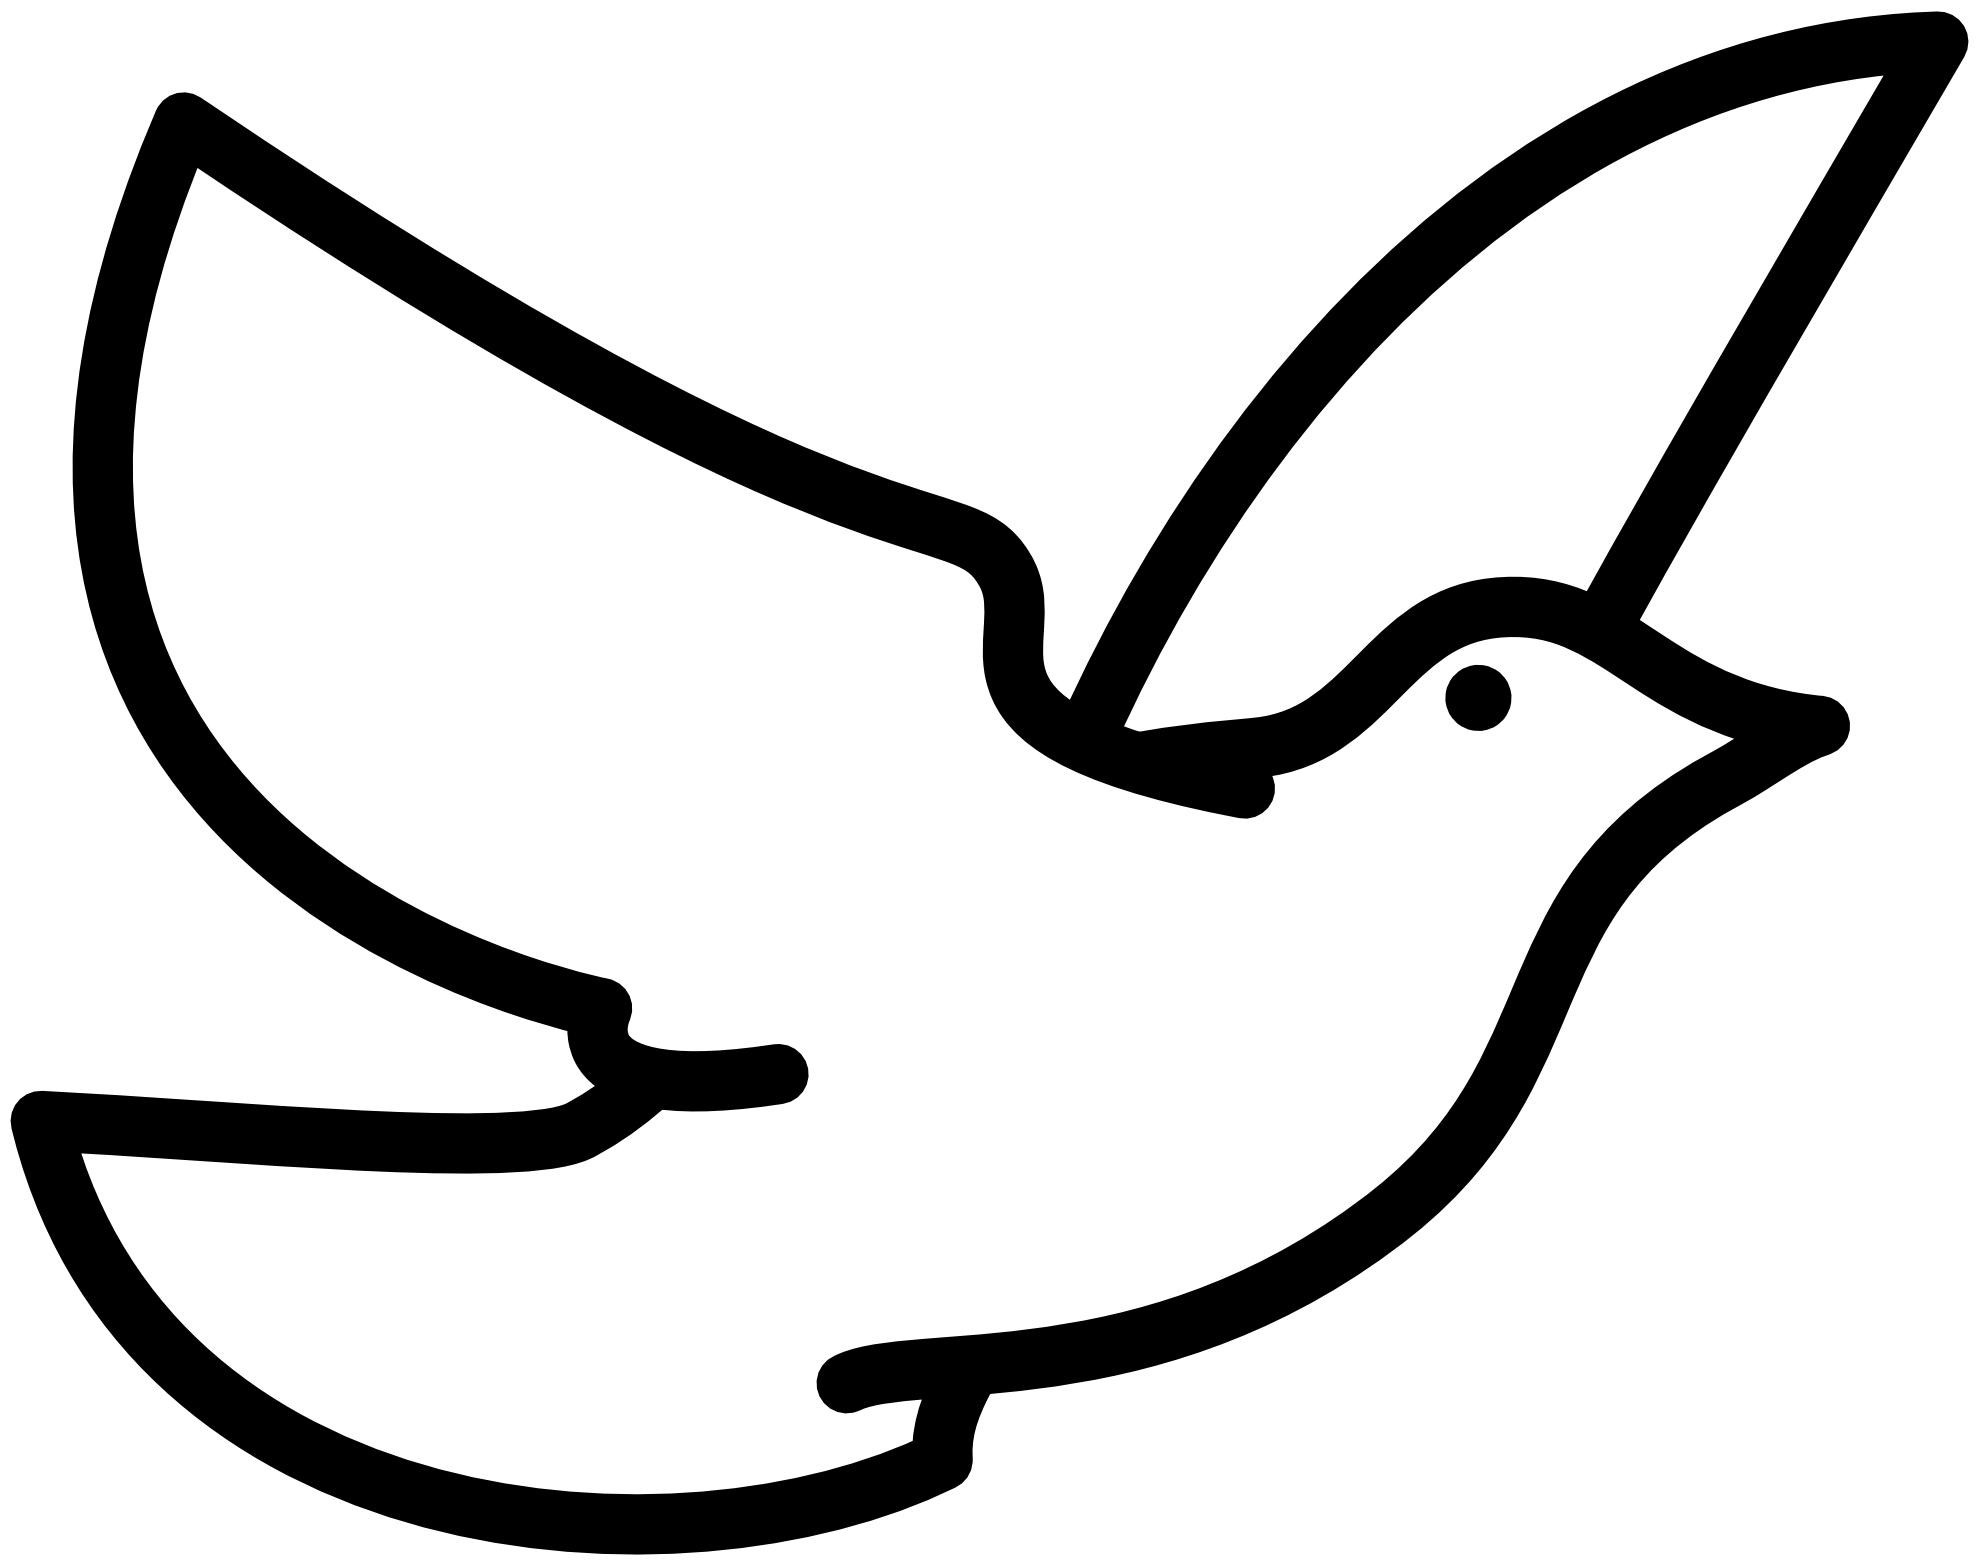 png royalty free Communion clipart black and white. Holy spirit dove panda